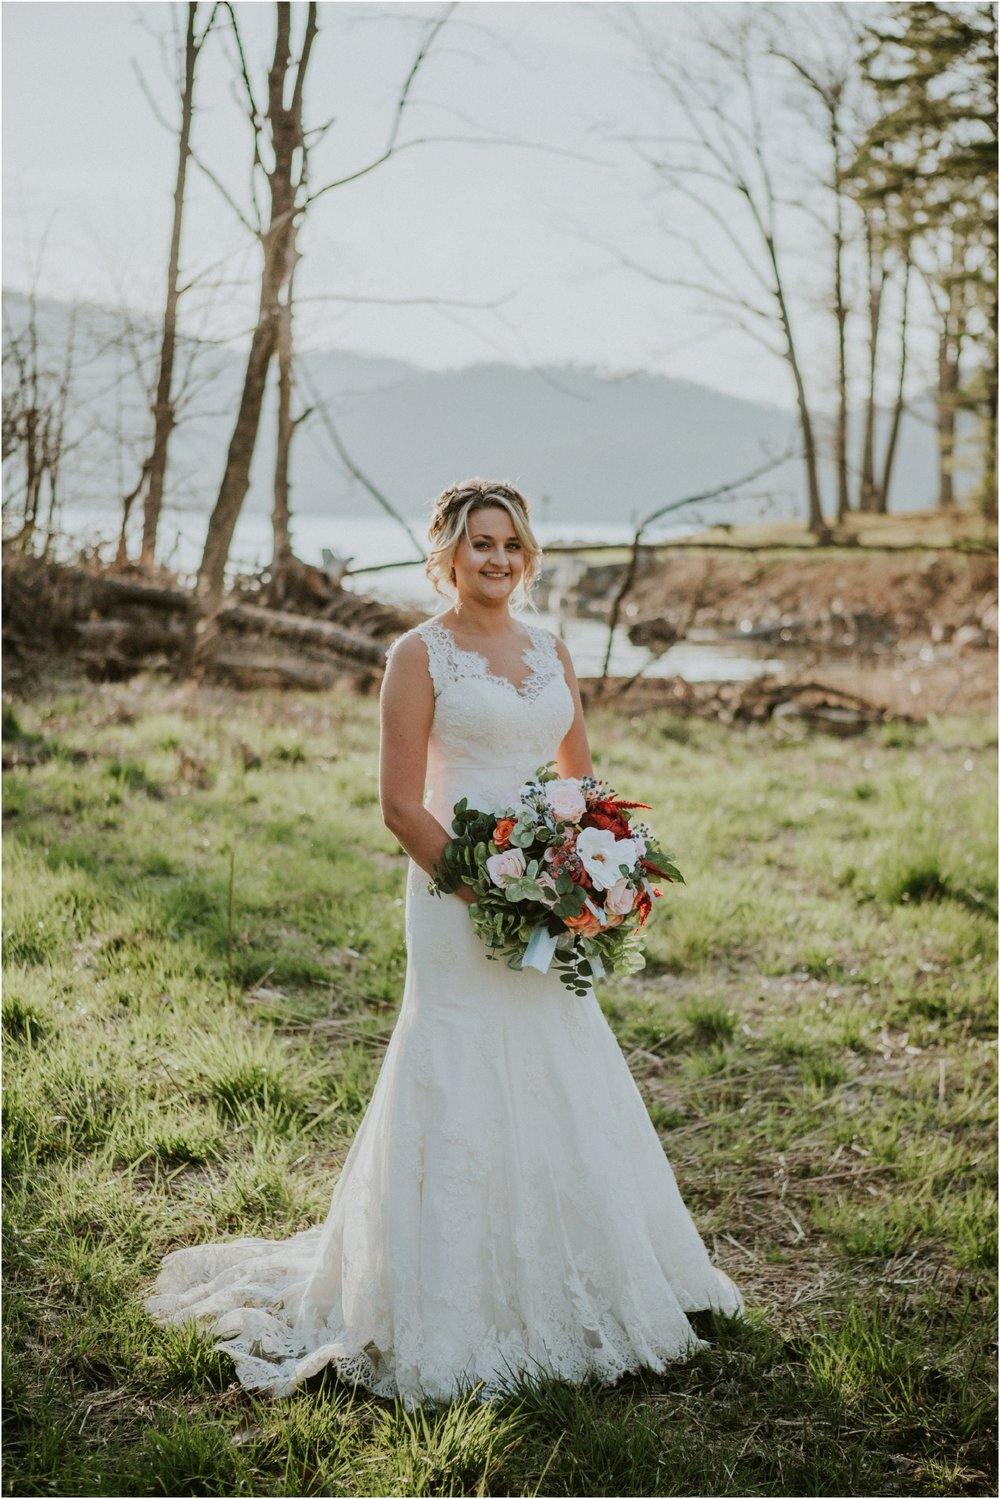 watauga-lake--bohemian-bridal-styled-session-northeast-tennessee-wedding-elopement-photography_0003.jpg